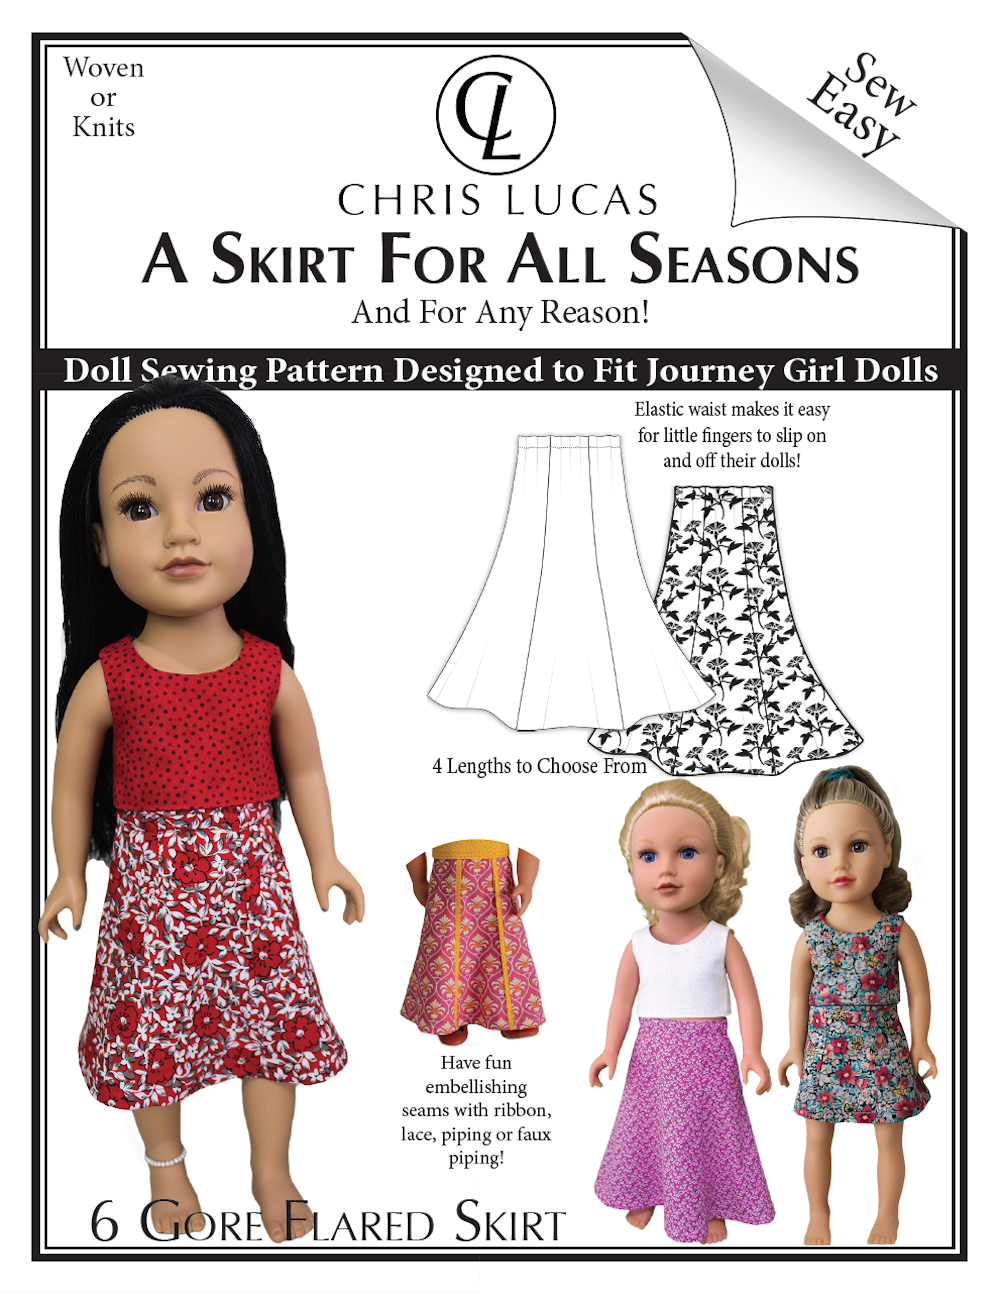 A Skirt for All Seasons - Chris Lucas Designs